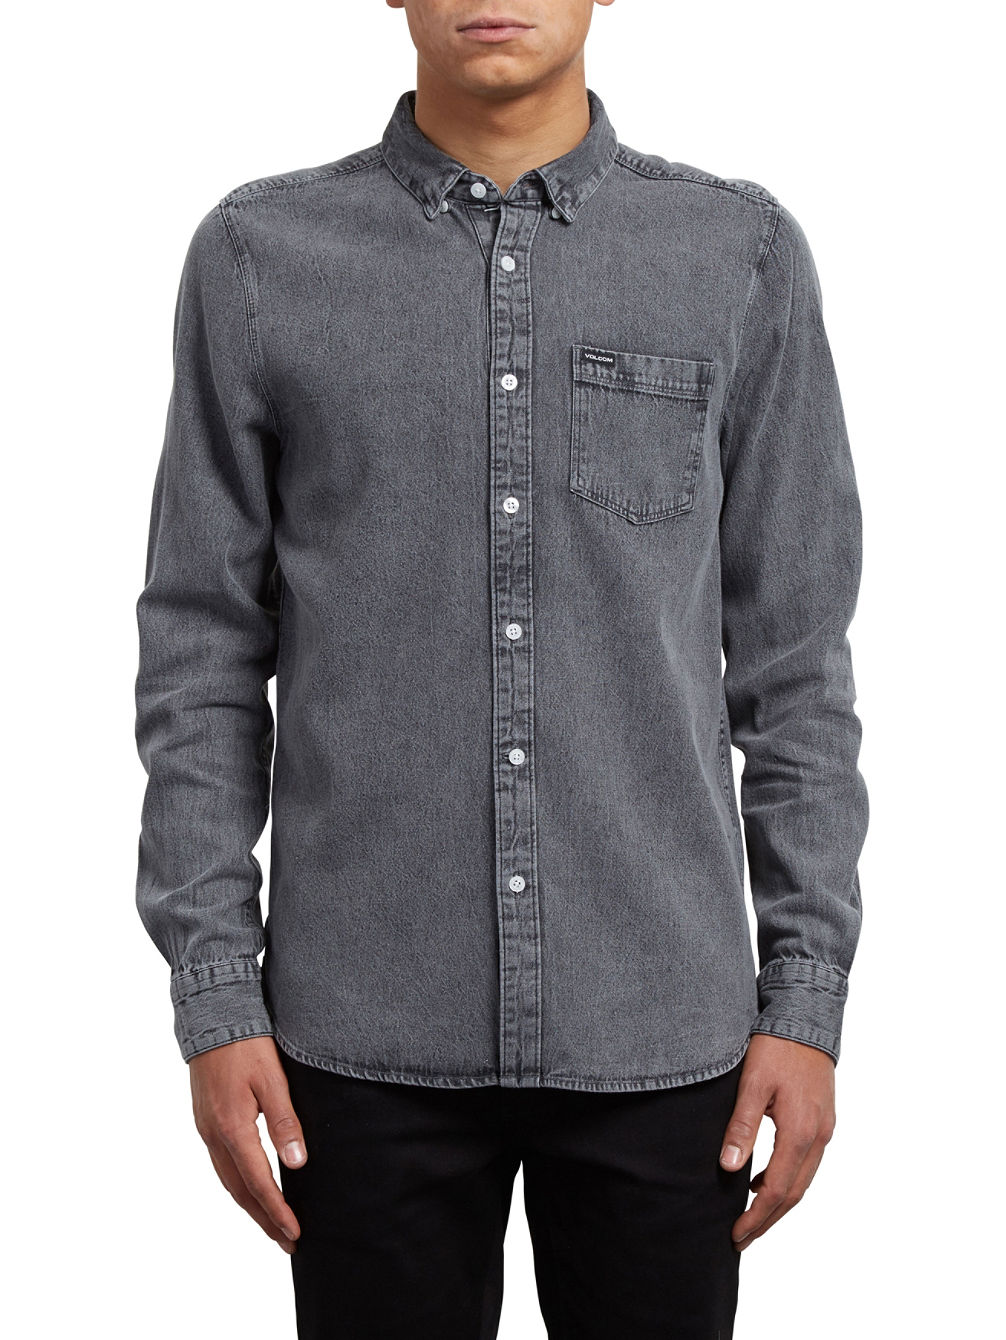 Glassic Shirt LS